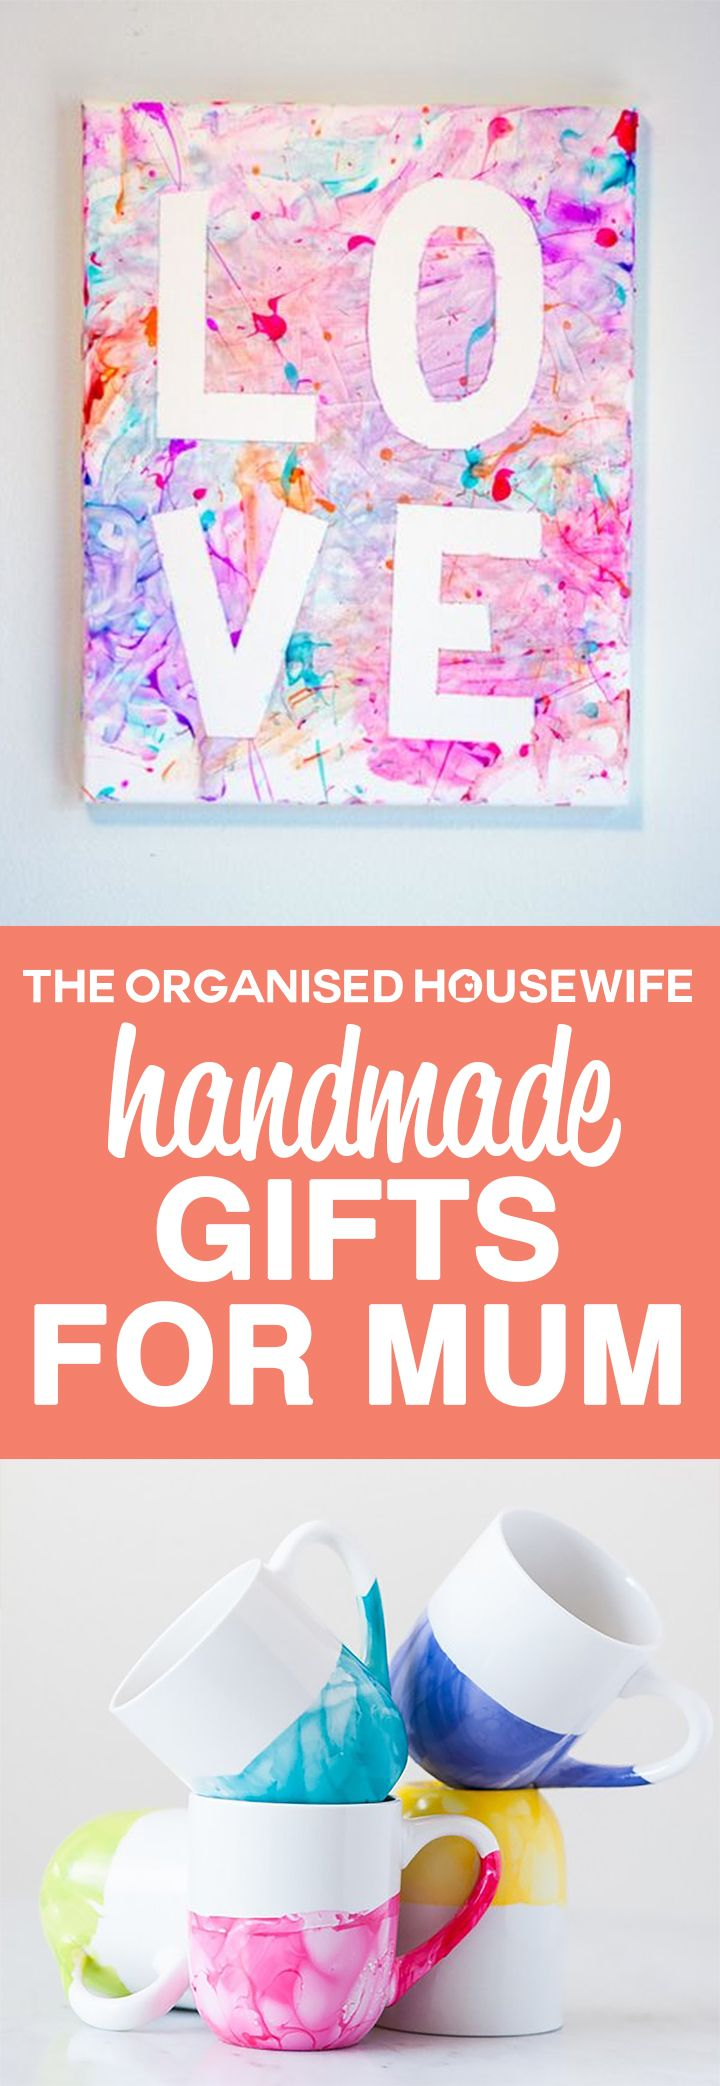 Xmas Present Ideas For Mum Part - 33: 9 Handmade Gifts For Mum